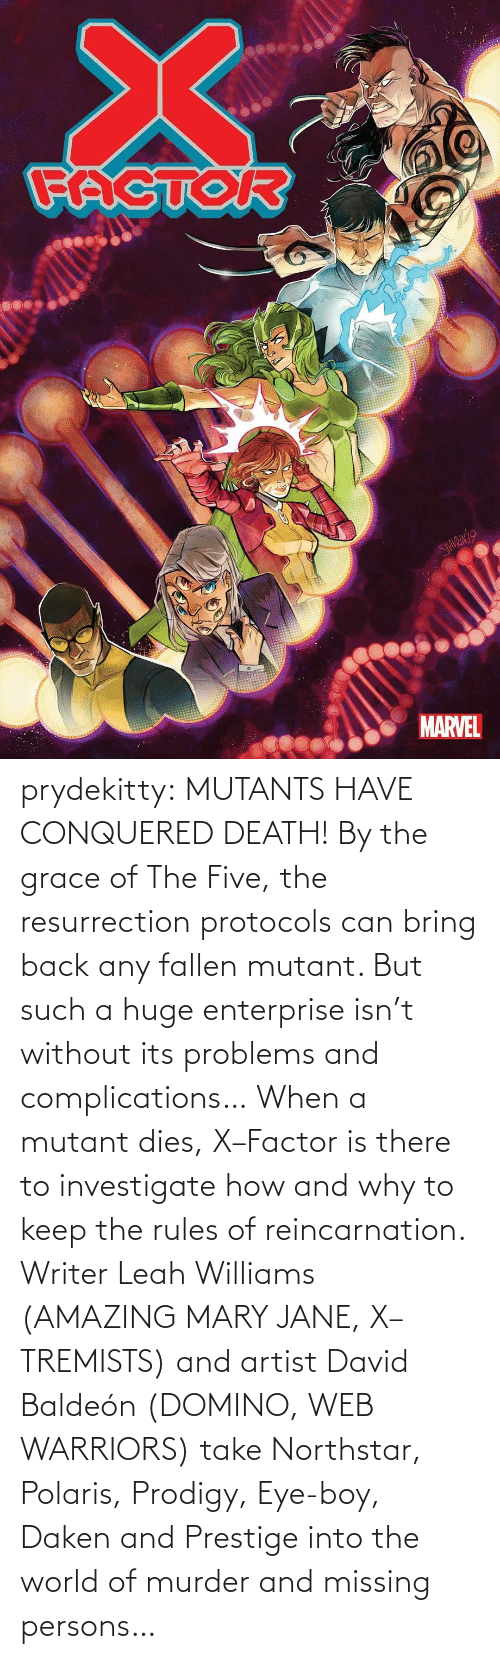 Tumblr, Blog, and Death: prydekitty:  MUTANTS HAVE CONQUERED DEATH! By the grace of The Five, the resurrection protocols can bring back any fallen mutant. But such a huge enterprise isn't without its problems and complications… When a mutant dies, X–Factor is there to investigate how and why to keep the rules of reincarnation. Writer Leah Williams (AMAZING MARY JANE, X–TREMISTS) and artist David Baldeón (DOMINO, WEB WARRIORS) take Northstar, Polaris, Prodigy, Eye-boy, Daken and Prestige into the world of murder and missing persons…